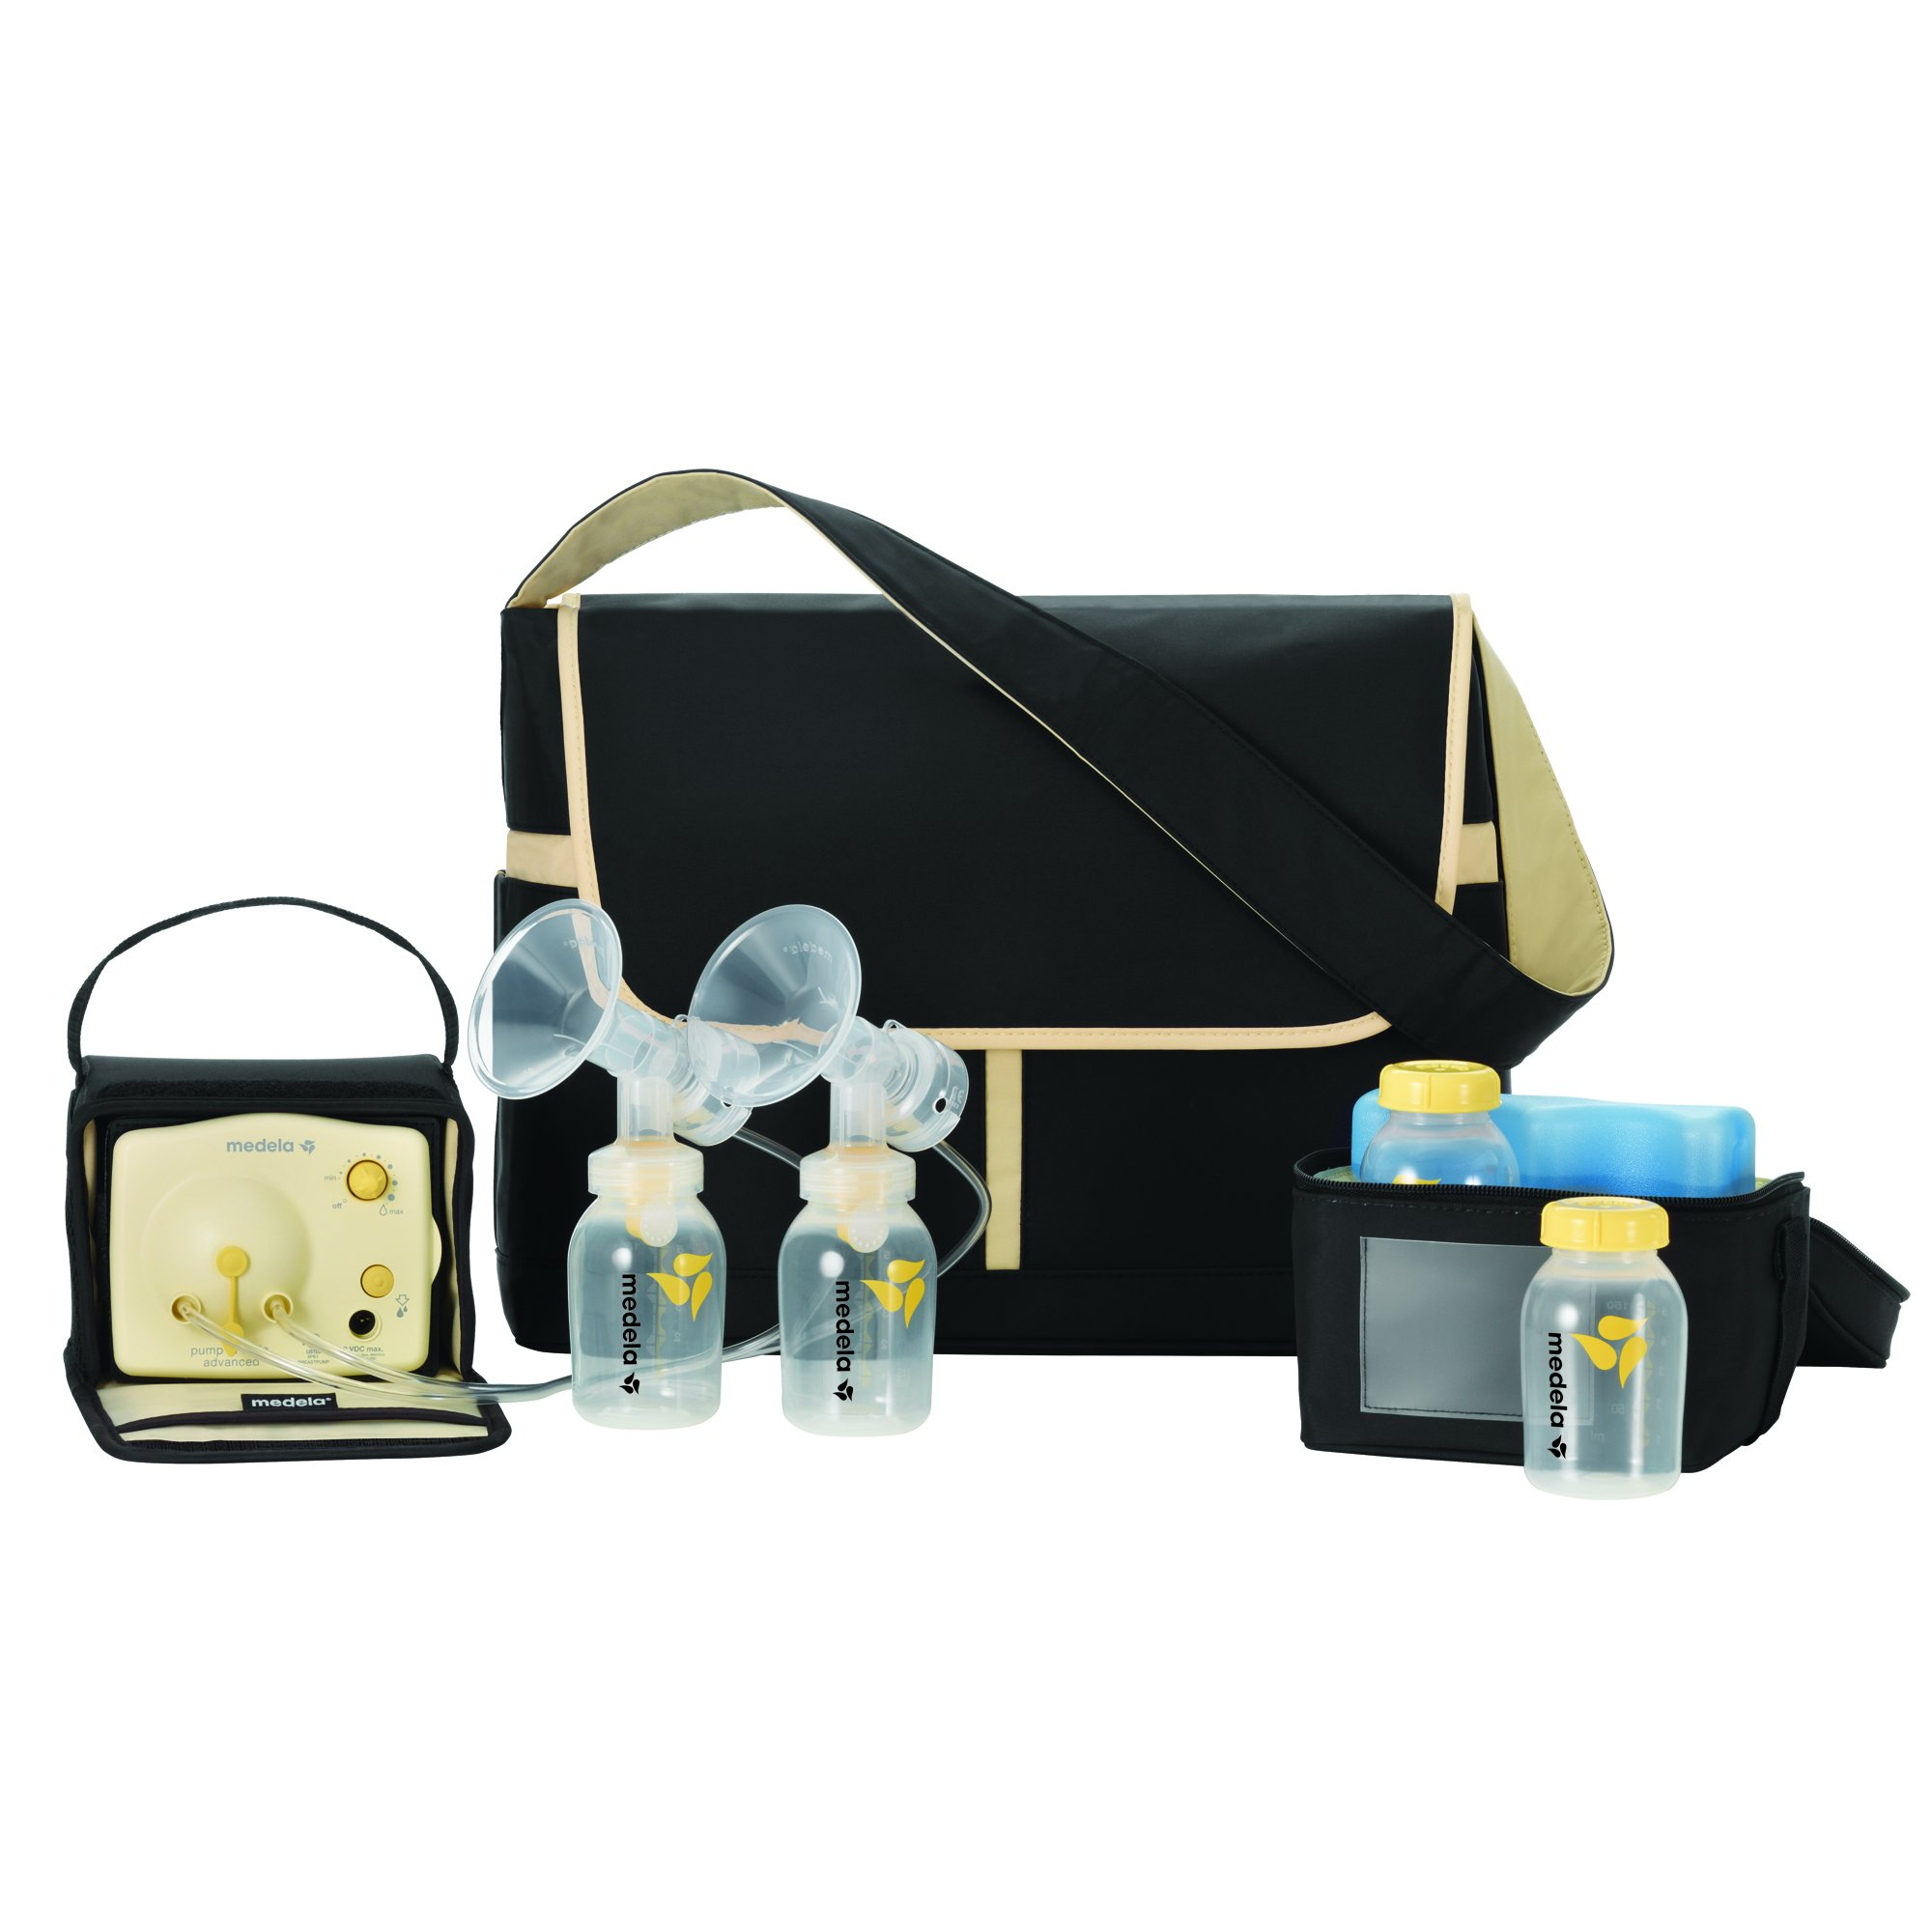 Medela Pump in Style Advanced Breast Pump, Double Electric Breast Pump Kit, Portable Battery Pack, Stylish Microfiber Messenger Bag, Removable Cooler, Contoured Ice Pack, Bottles,2 Breast Shield Sizes by Medela